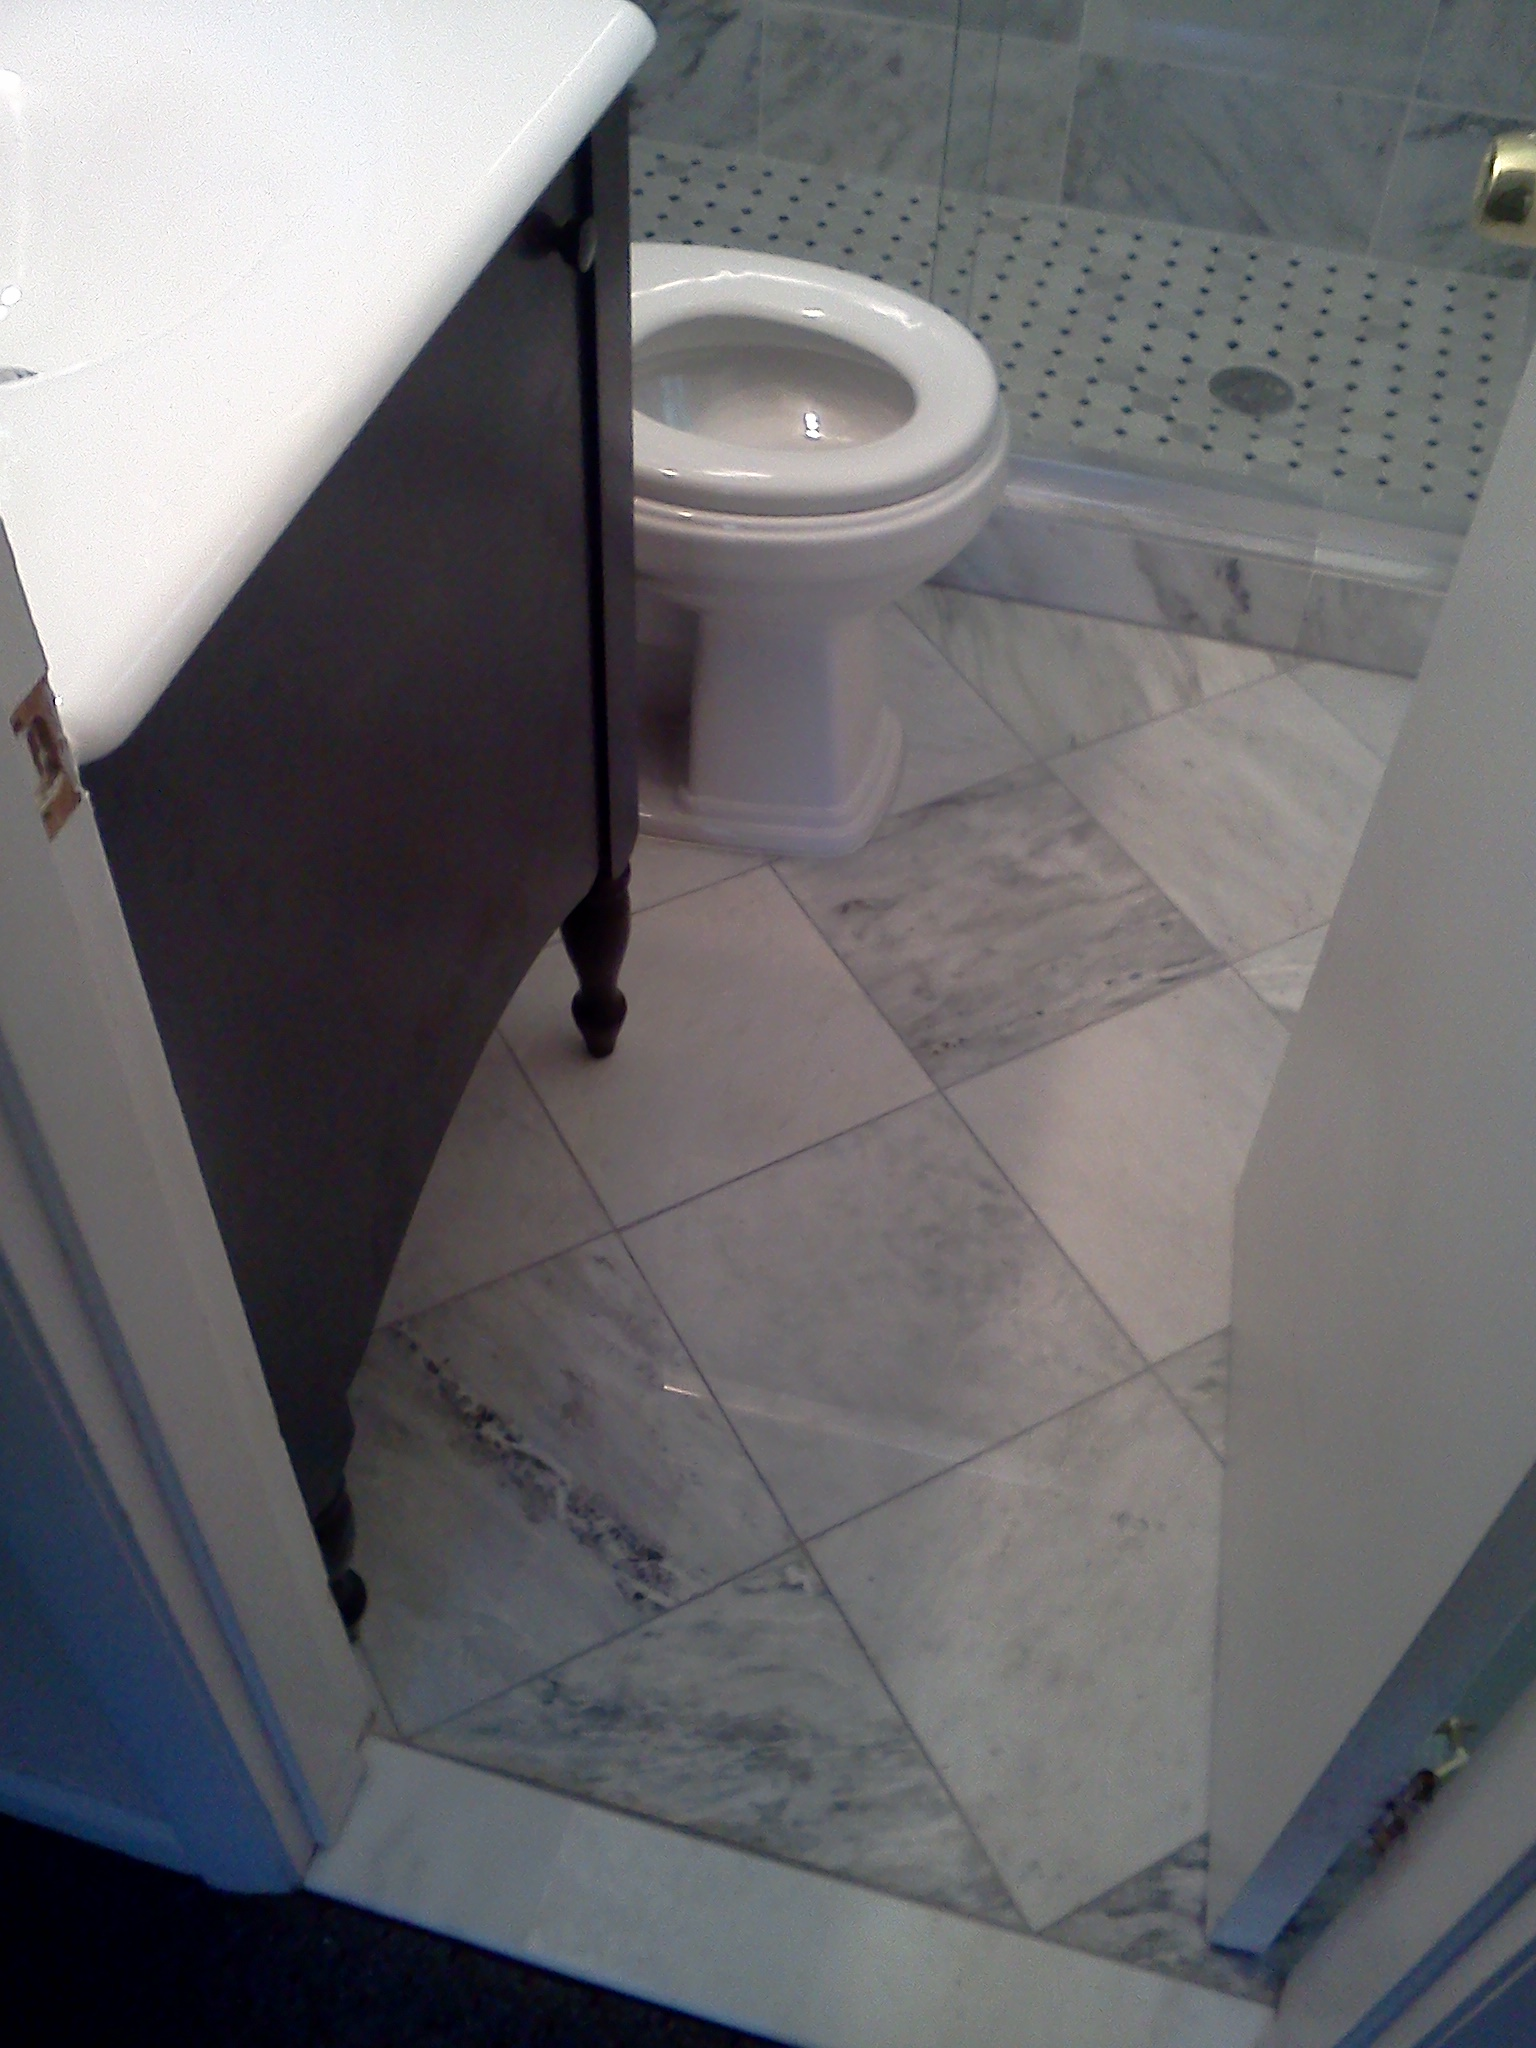 Plumbing & Clogged Drains-Frederick,MD